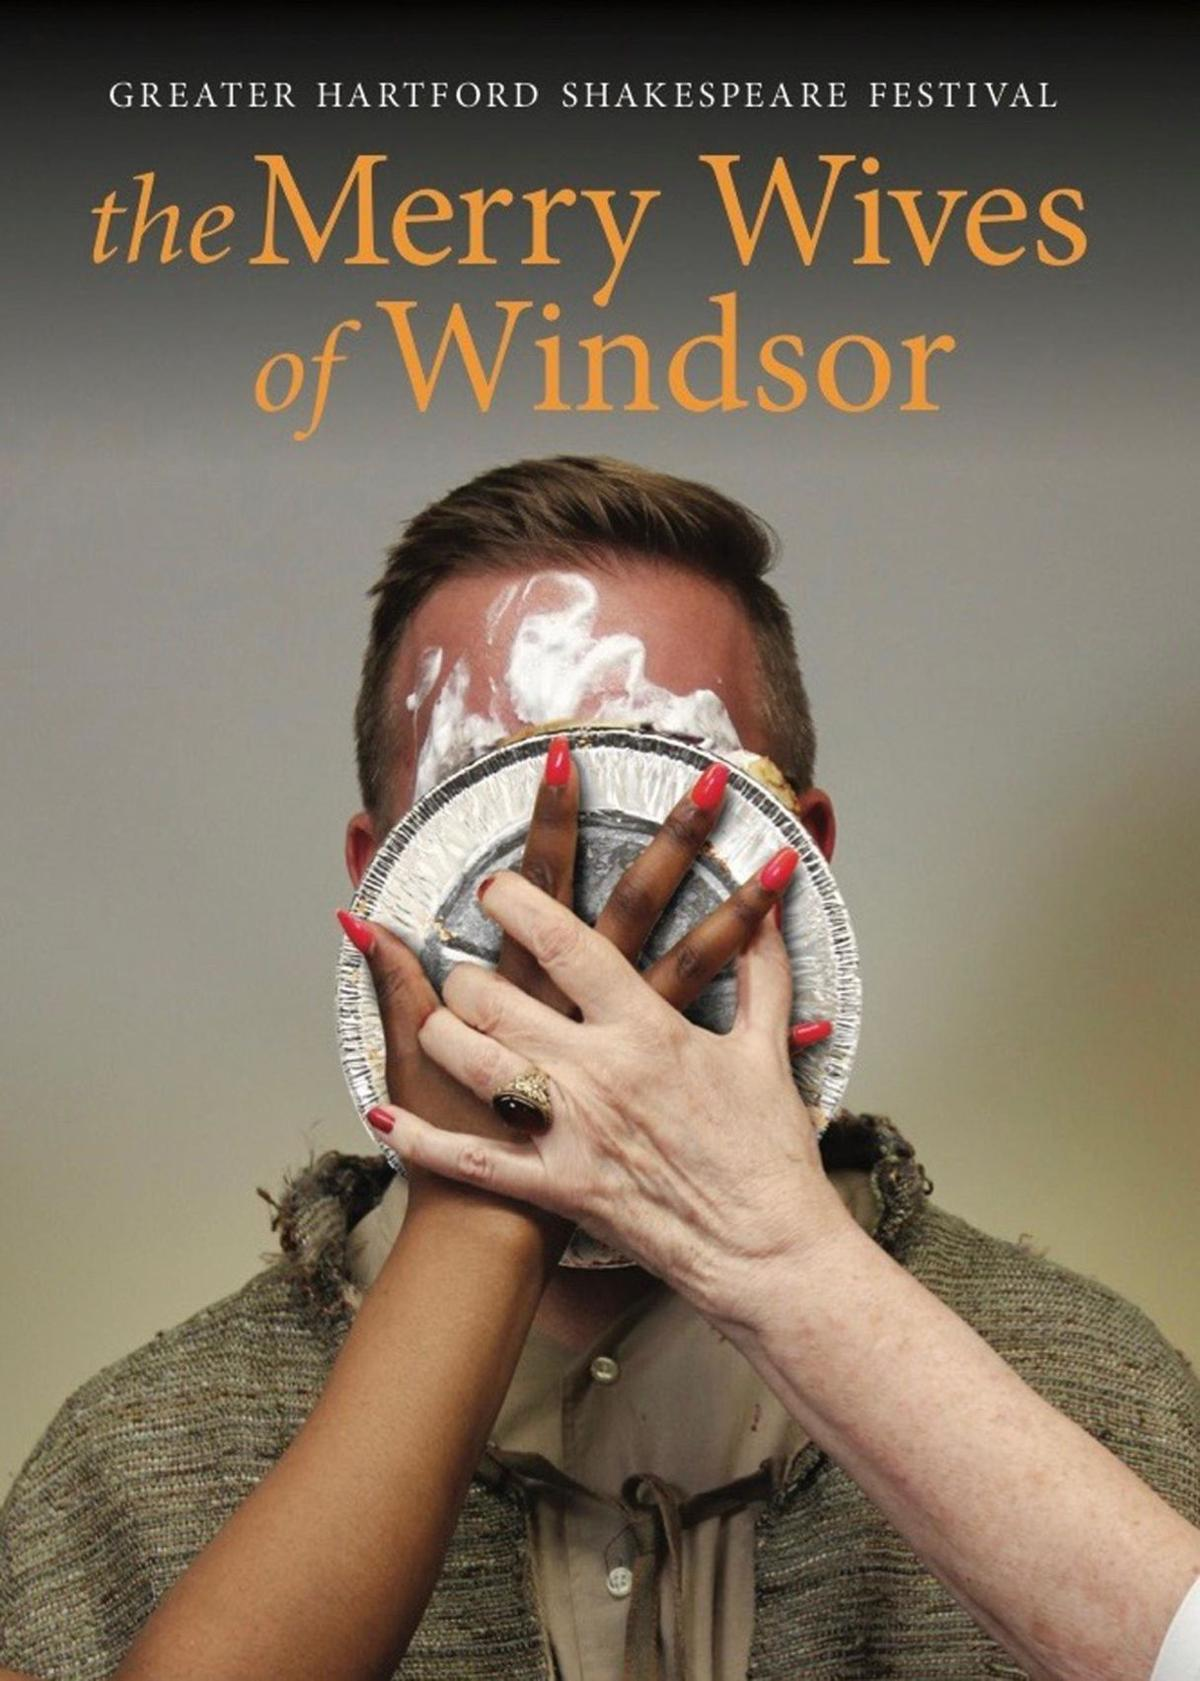 At University of Saint Joseph, 'Merry Wives of Windsor' is next Shakespeare Festival production